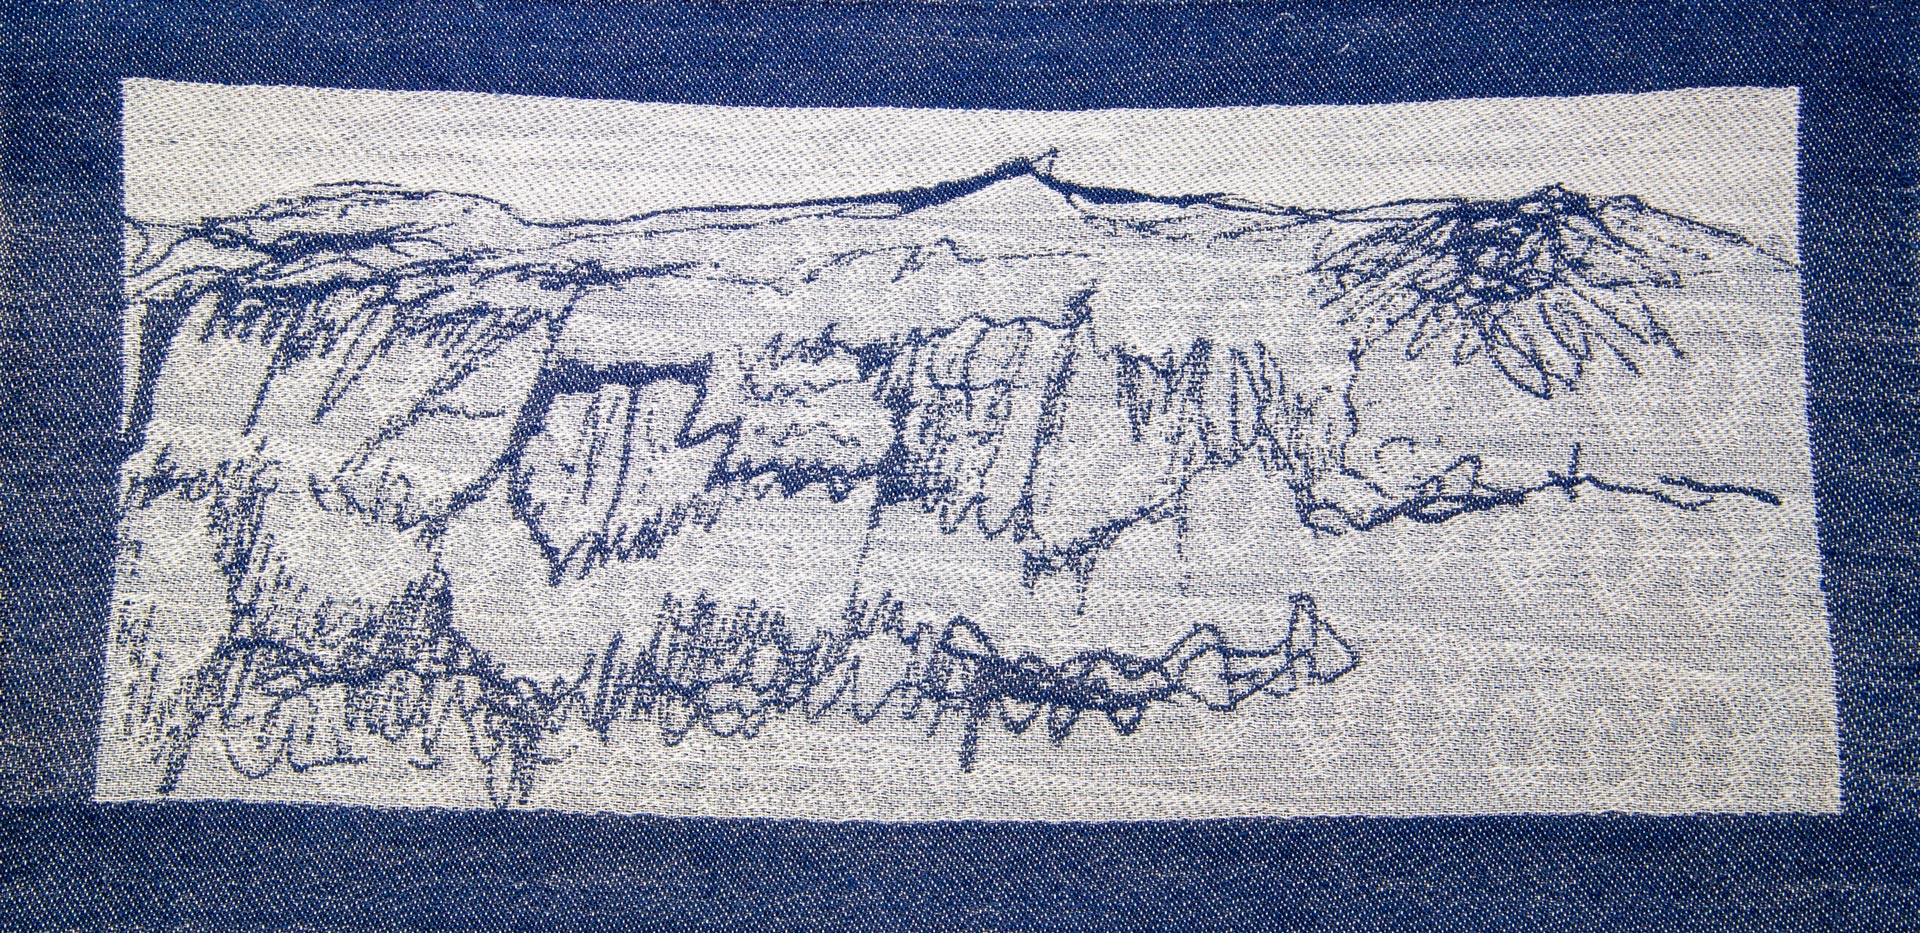 woven image of snowy hills